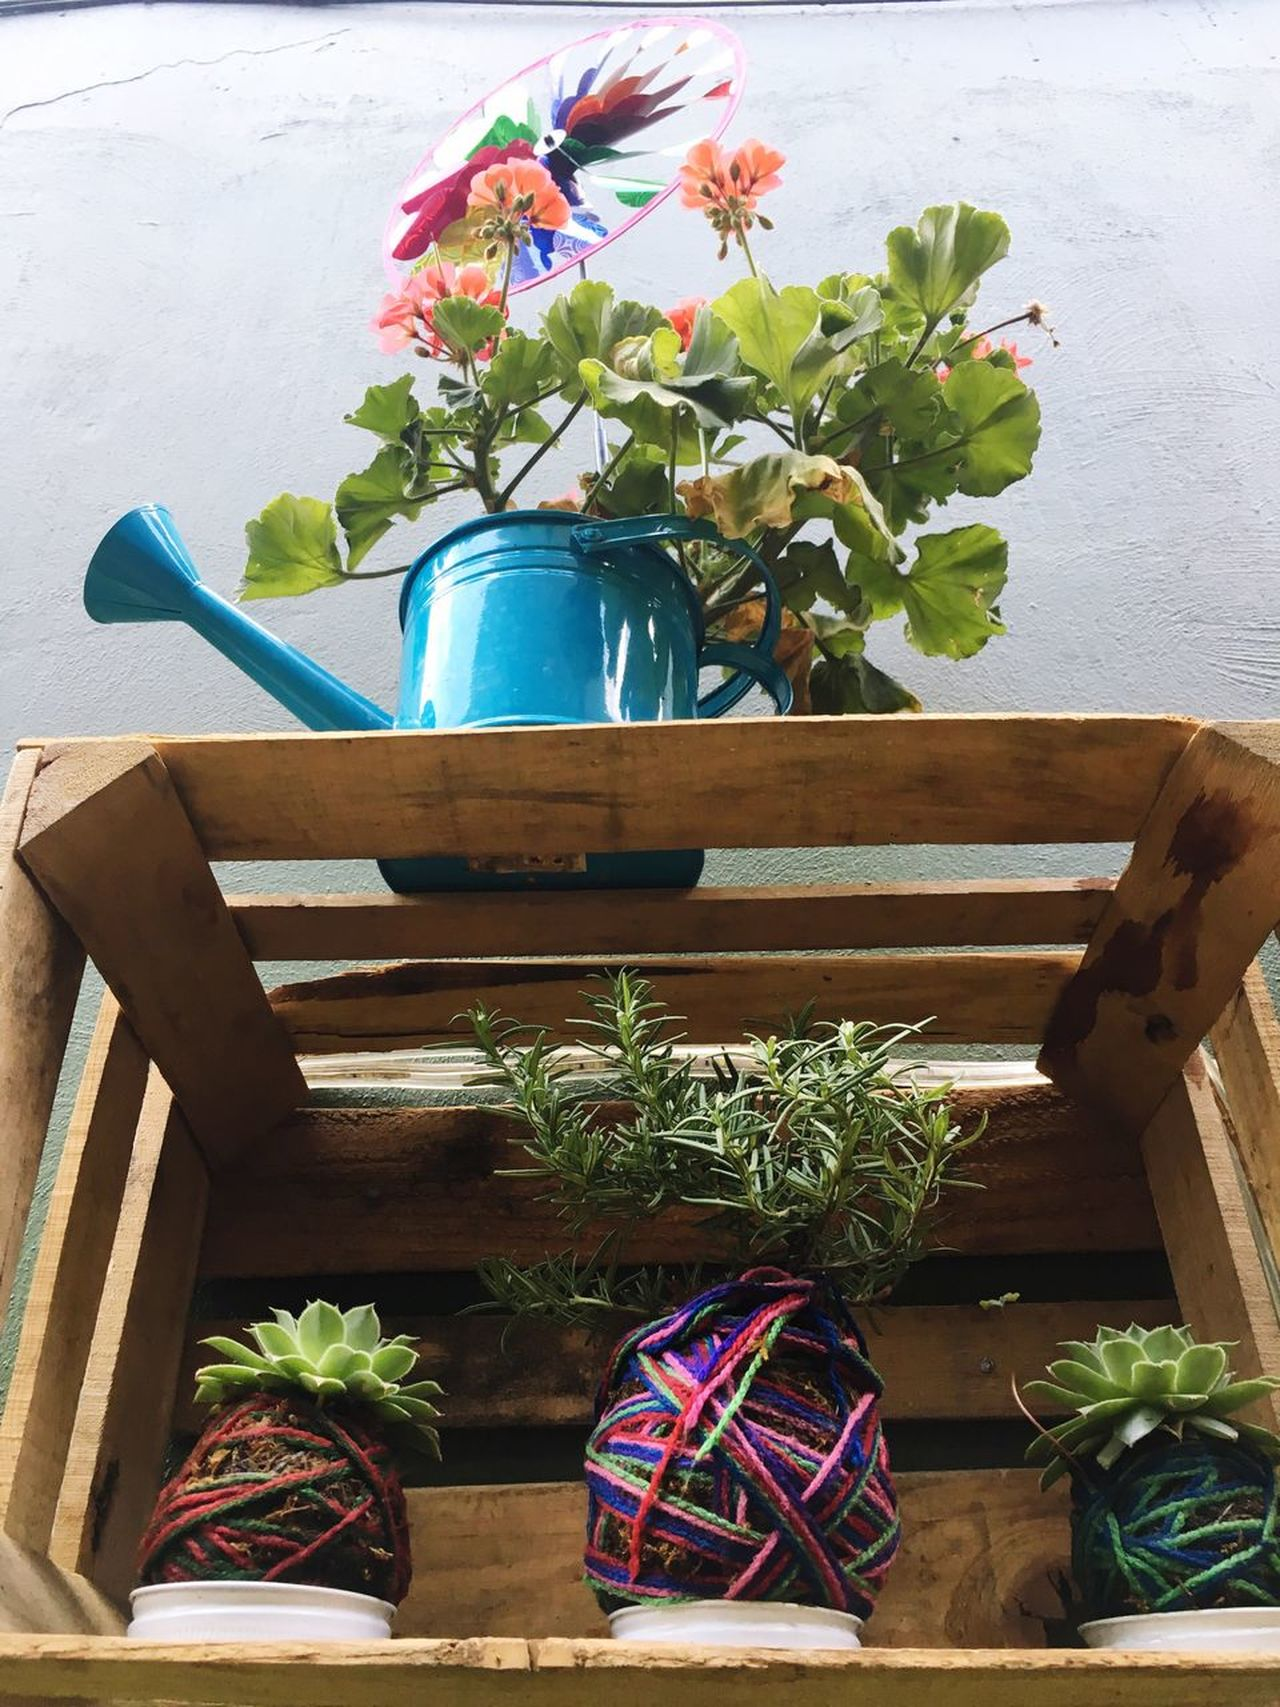 Potted Plant Flower Plant Growth Wood - Material Nature Leaf Table Beauty In Nature No People Day Outdoors Multi Colored Fragility Freshness Flower Head Close-up Florist IPhone Disfrutando De La Vida Rehilete